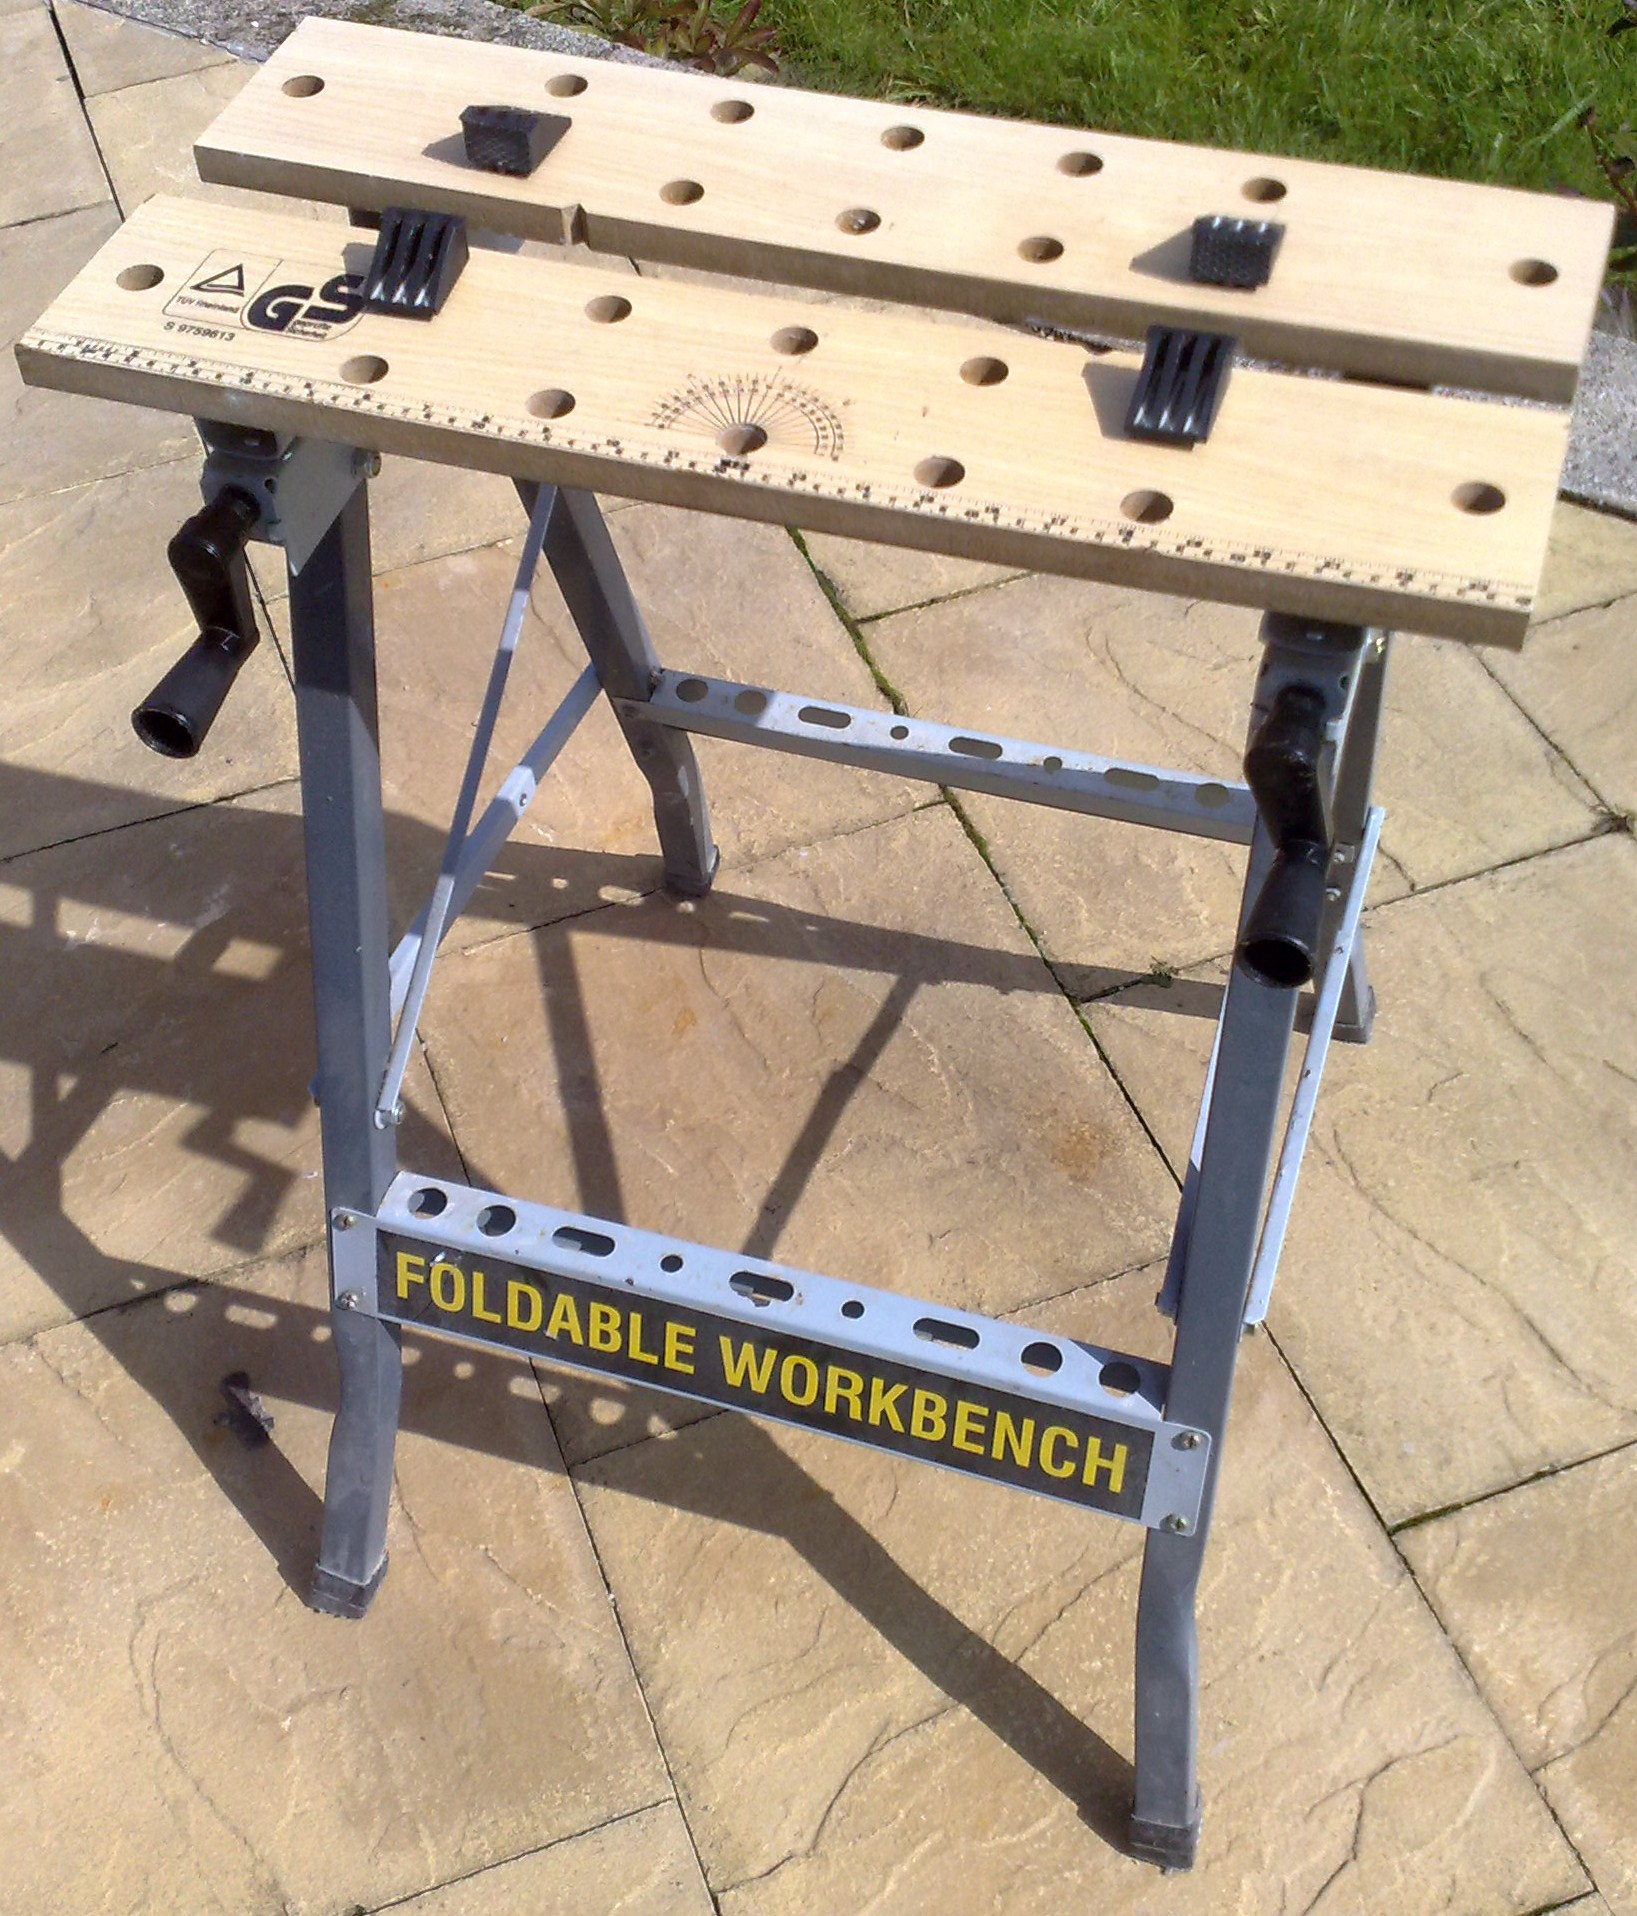 Workbench Hire - R Leisure Hire Ltd - 01524 733540